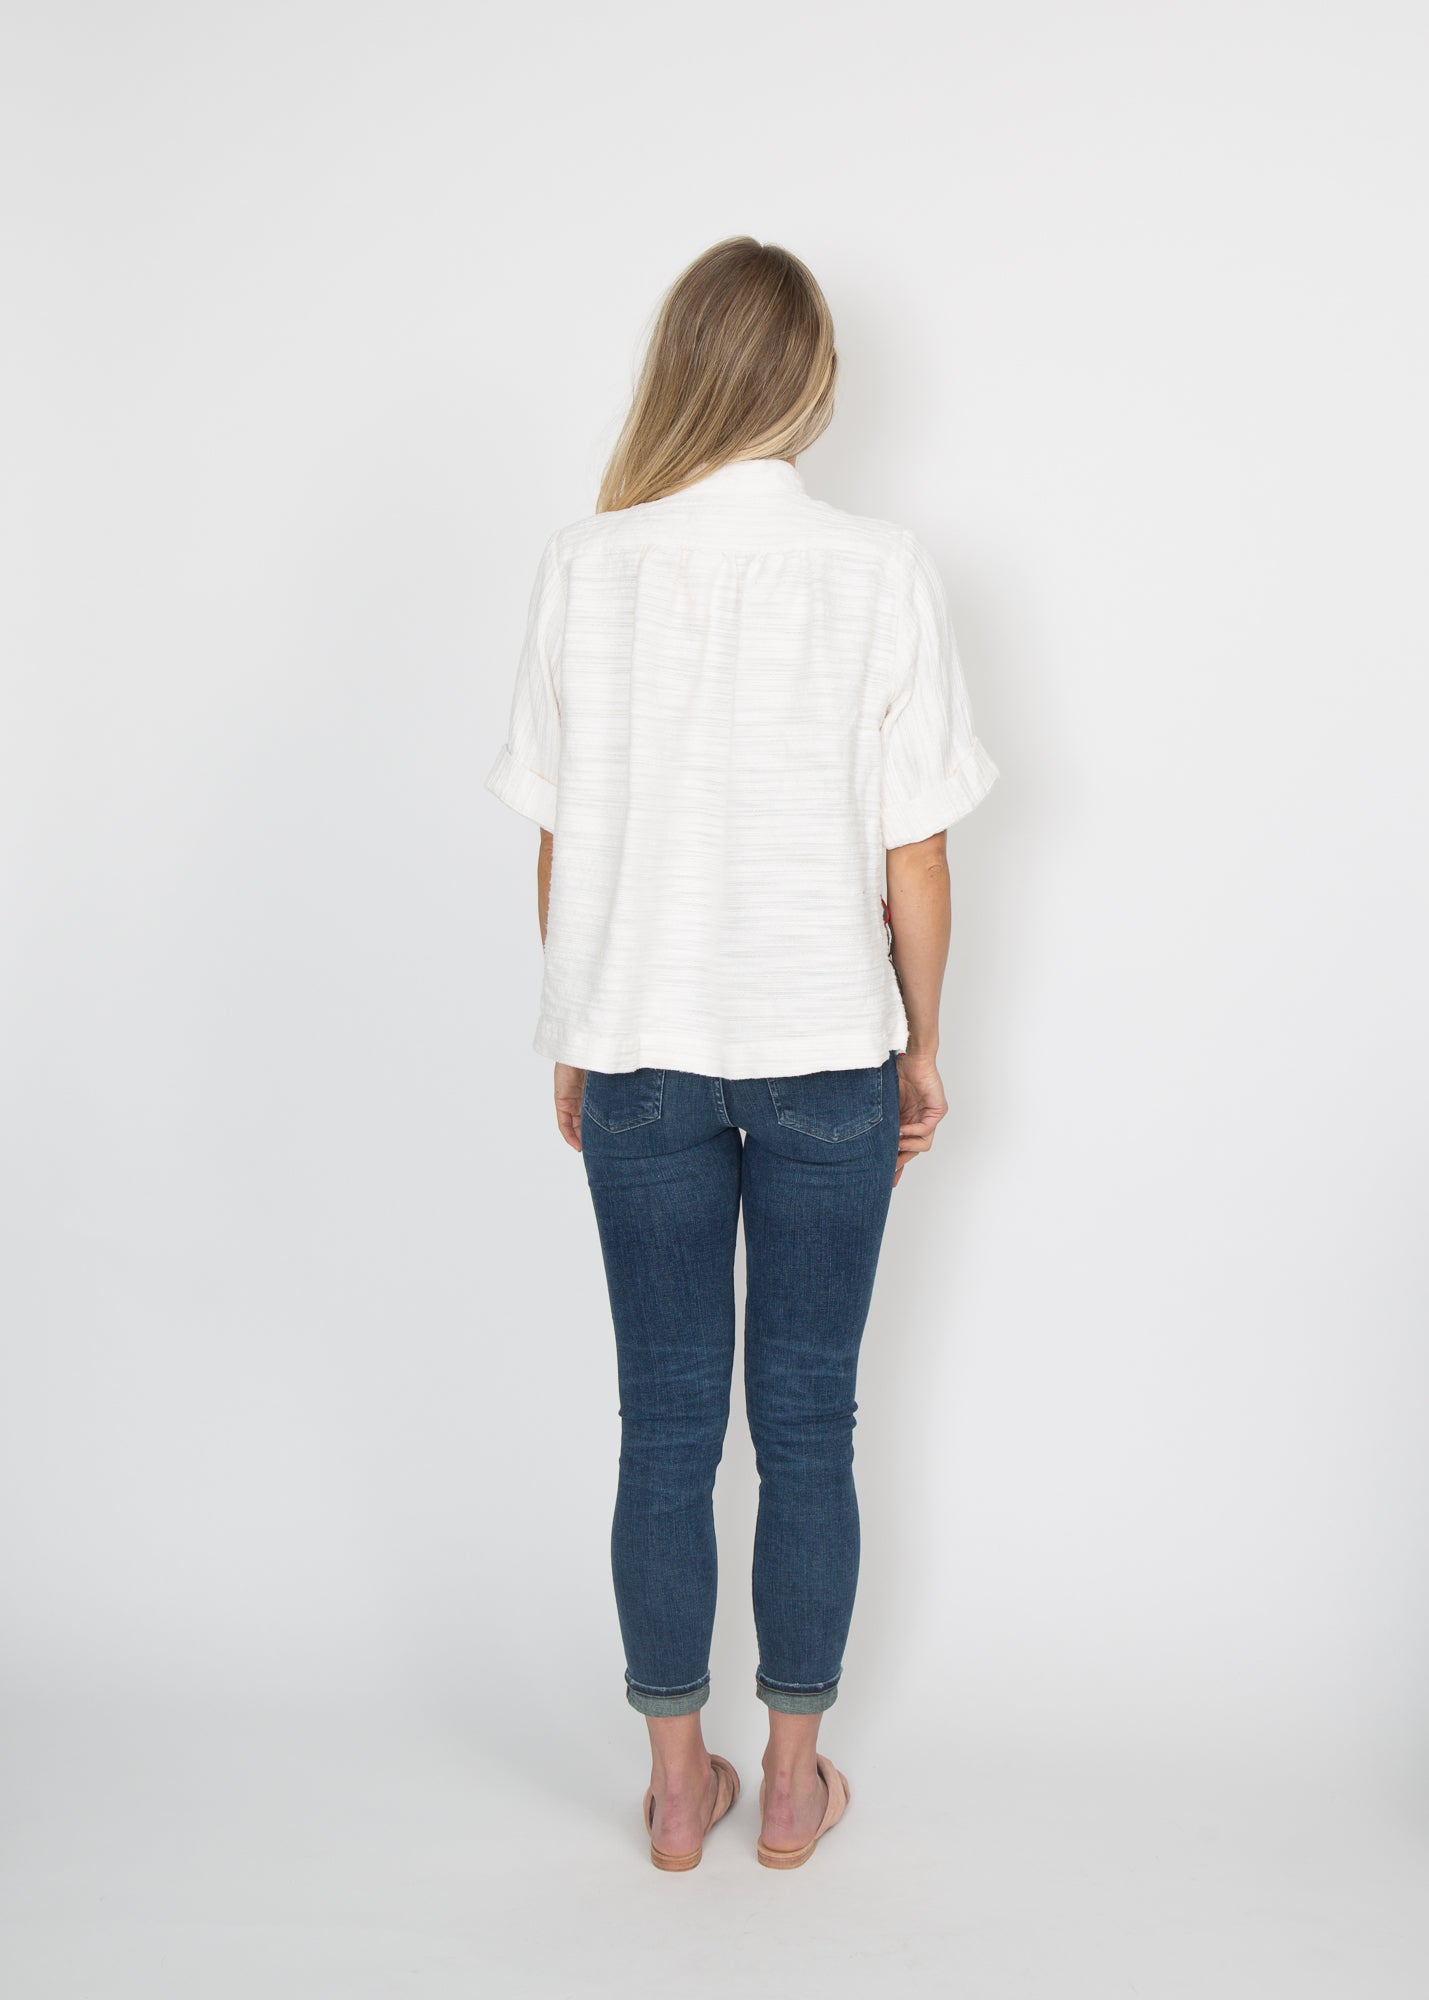 Good Company Popover Shirt White Solid